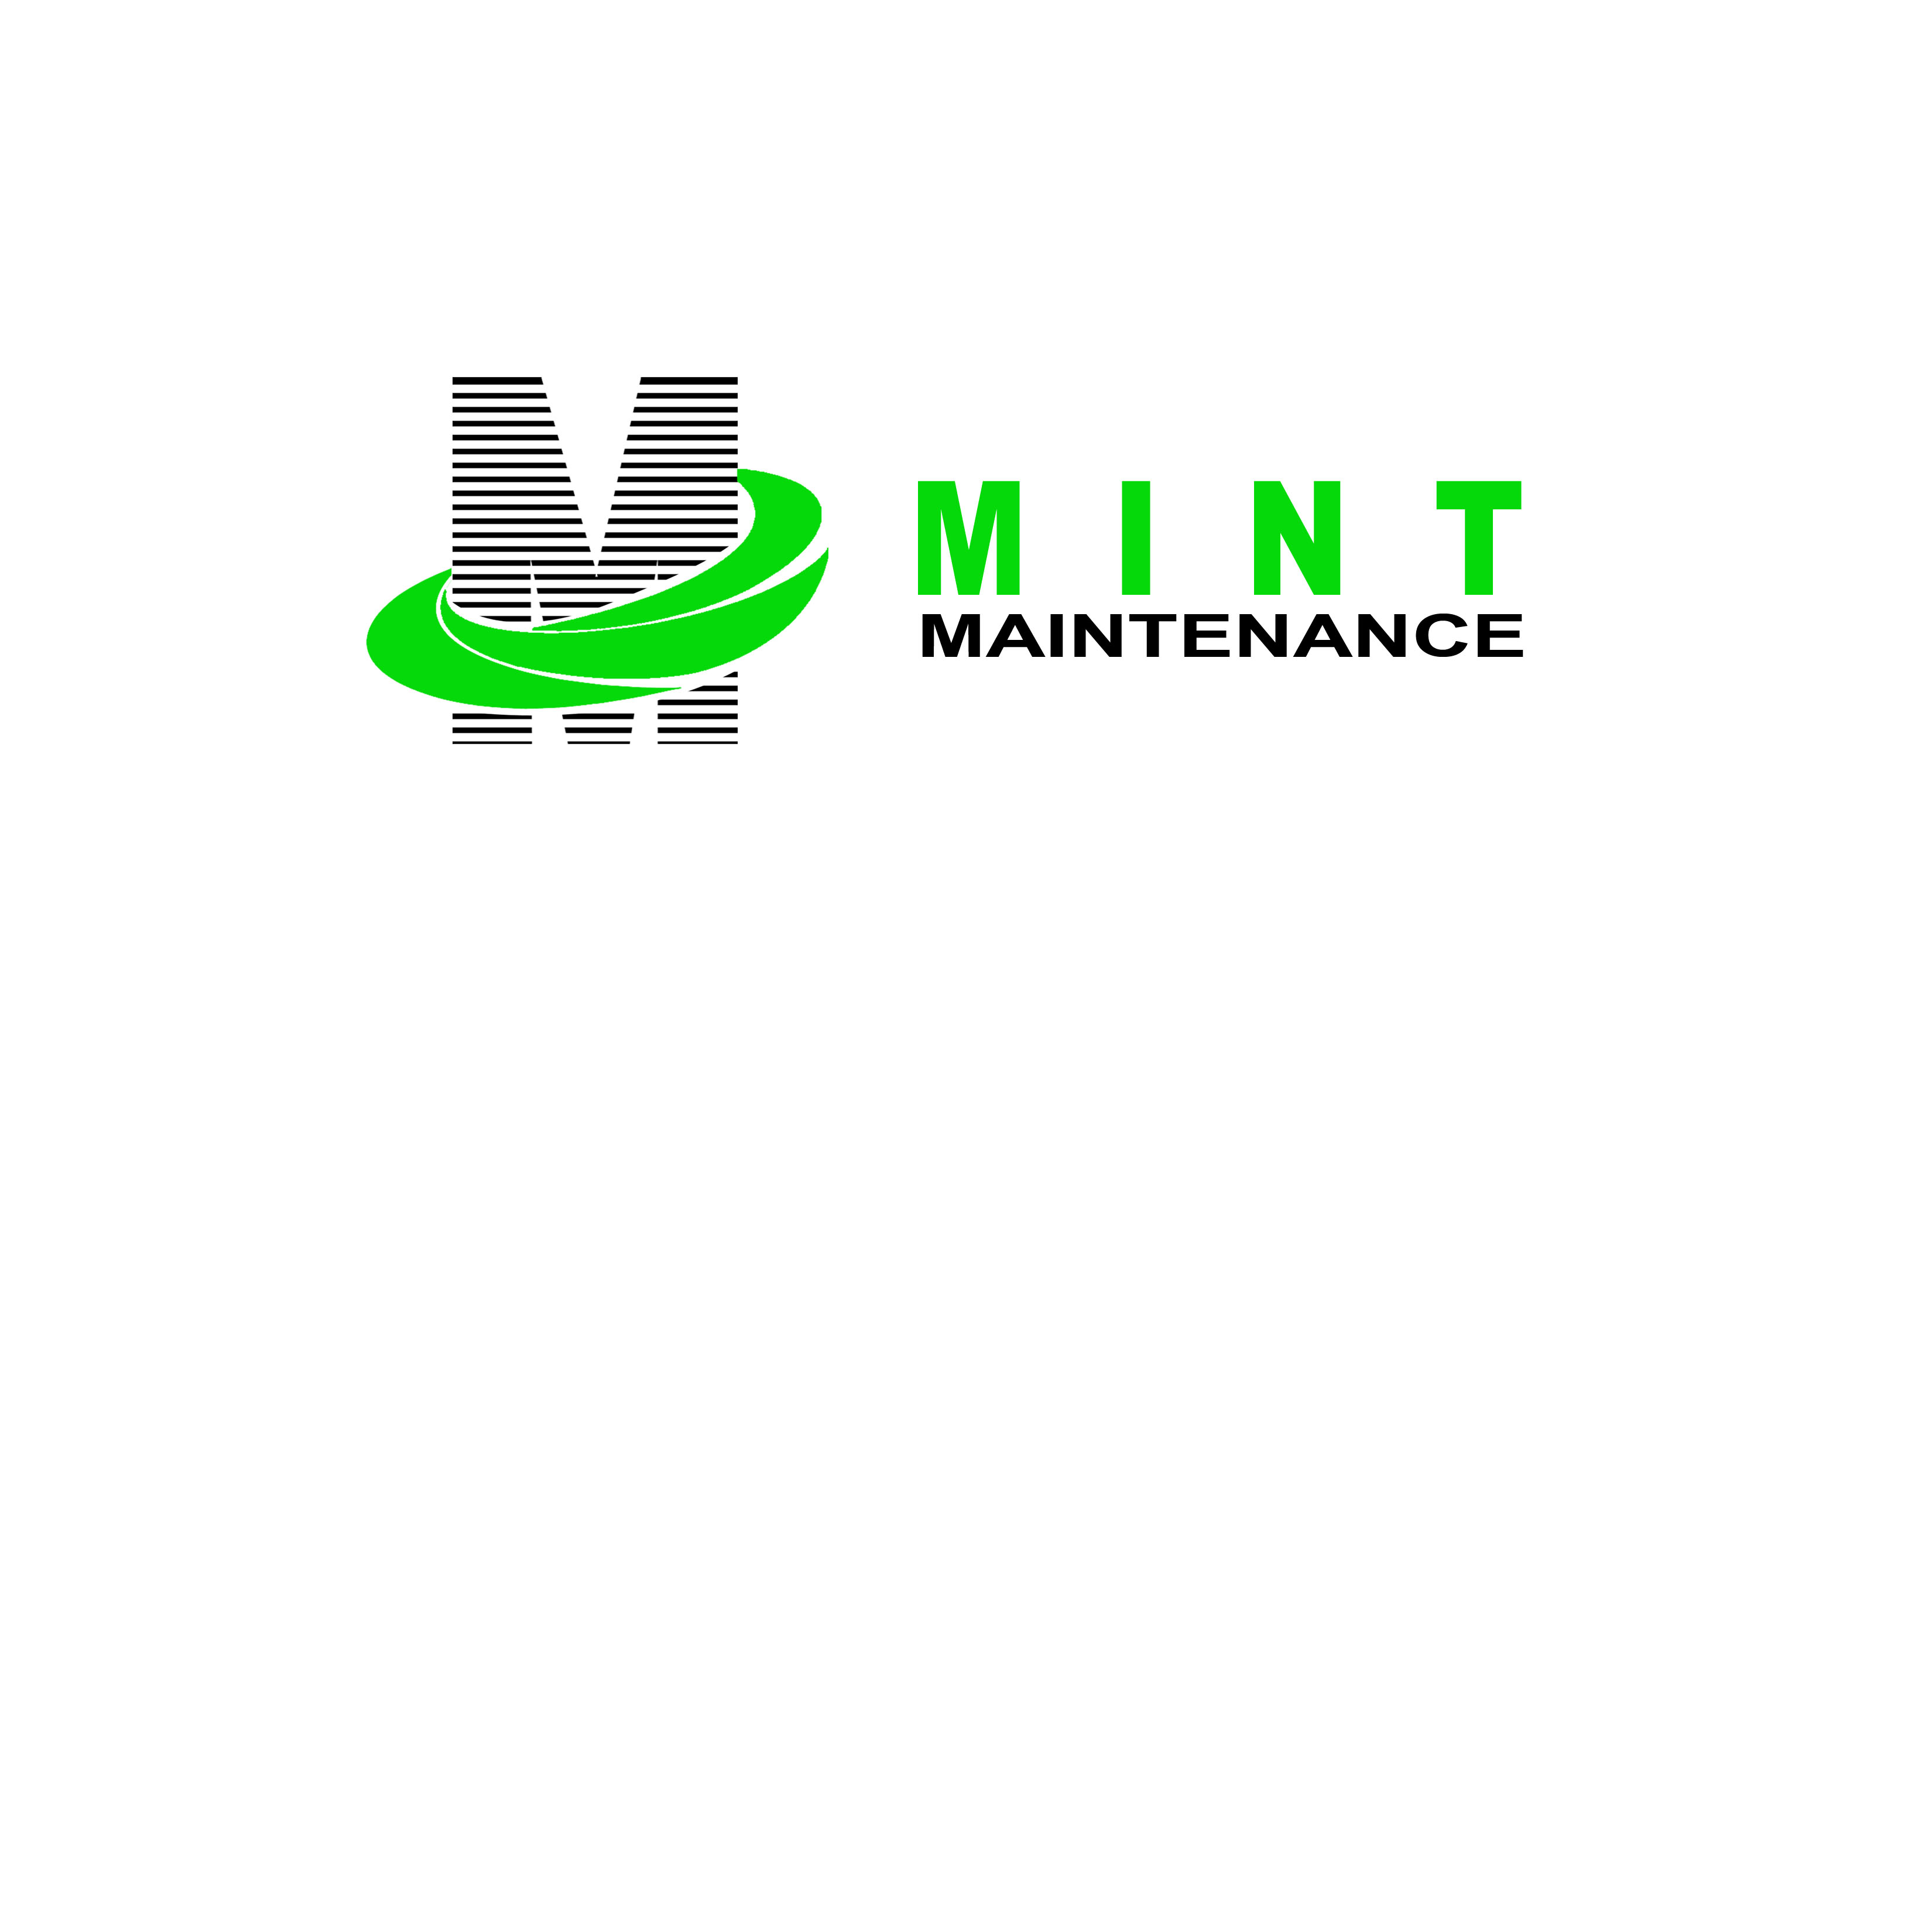 Logo Design by Allan Esclamado - Entry No. 209 in the Logo Design Contest Creative Logo Design for Mint Maintenance.